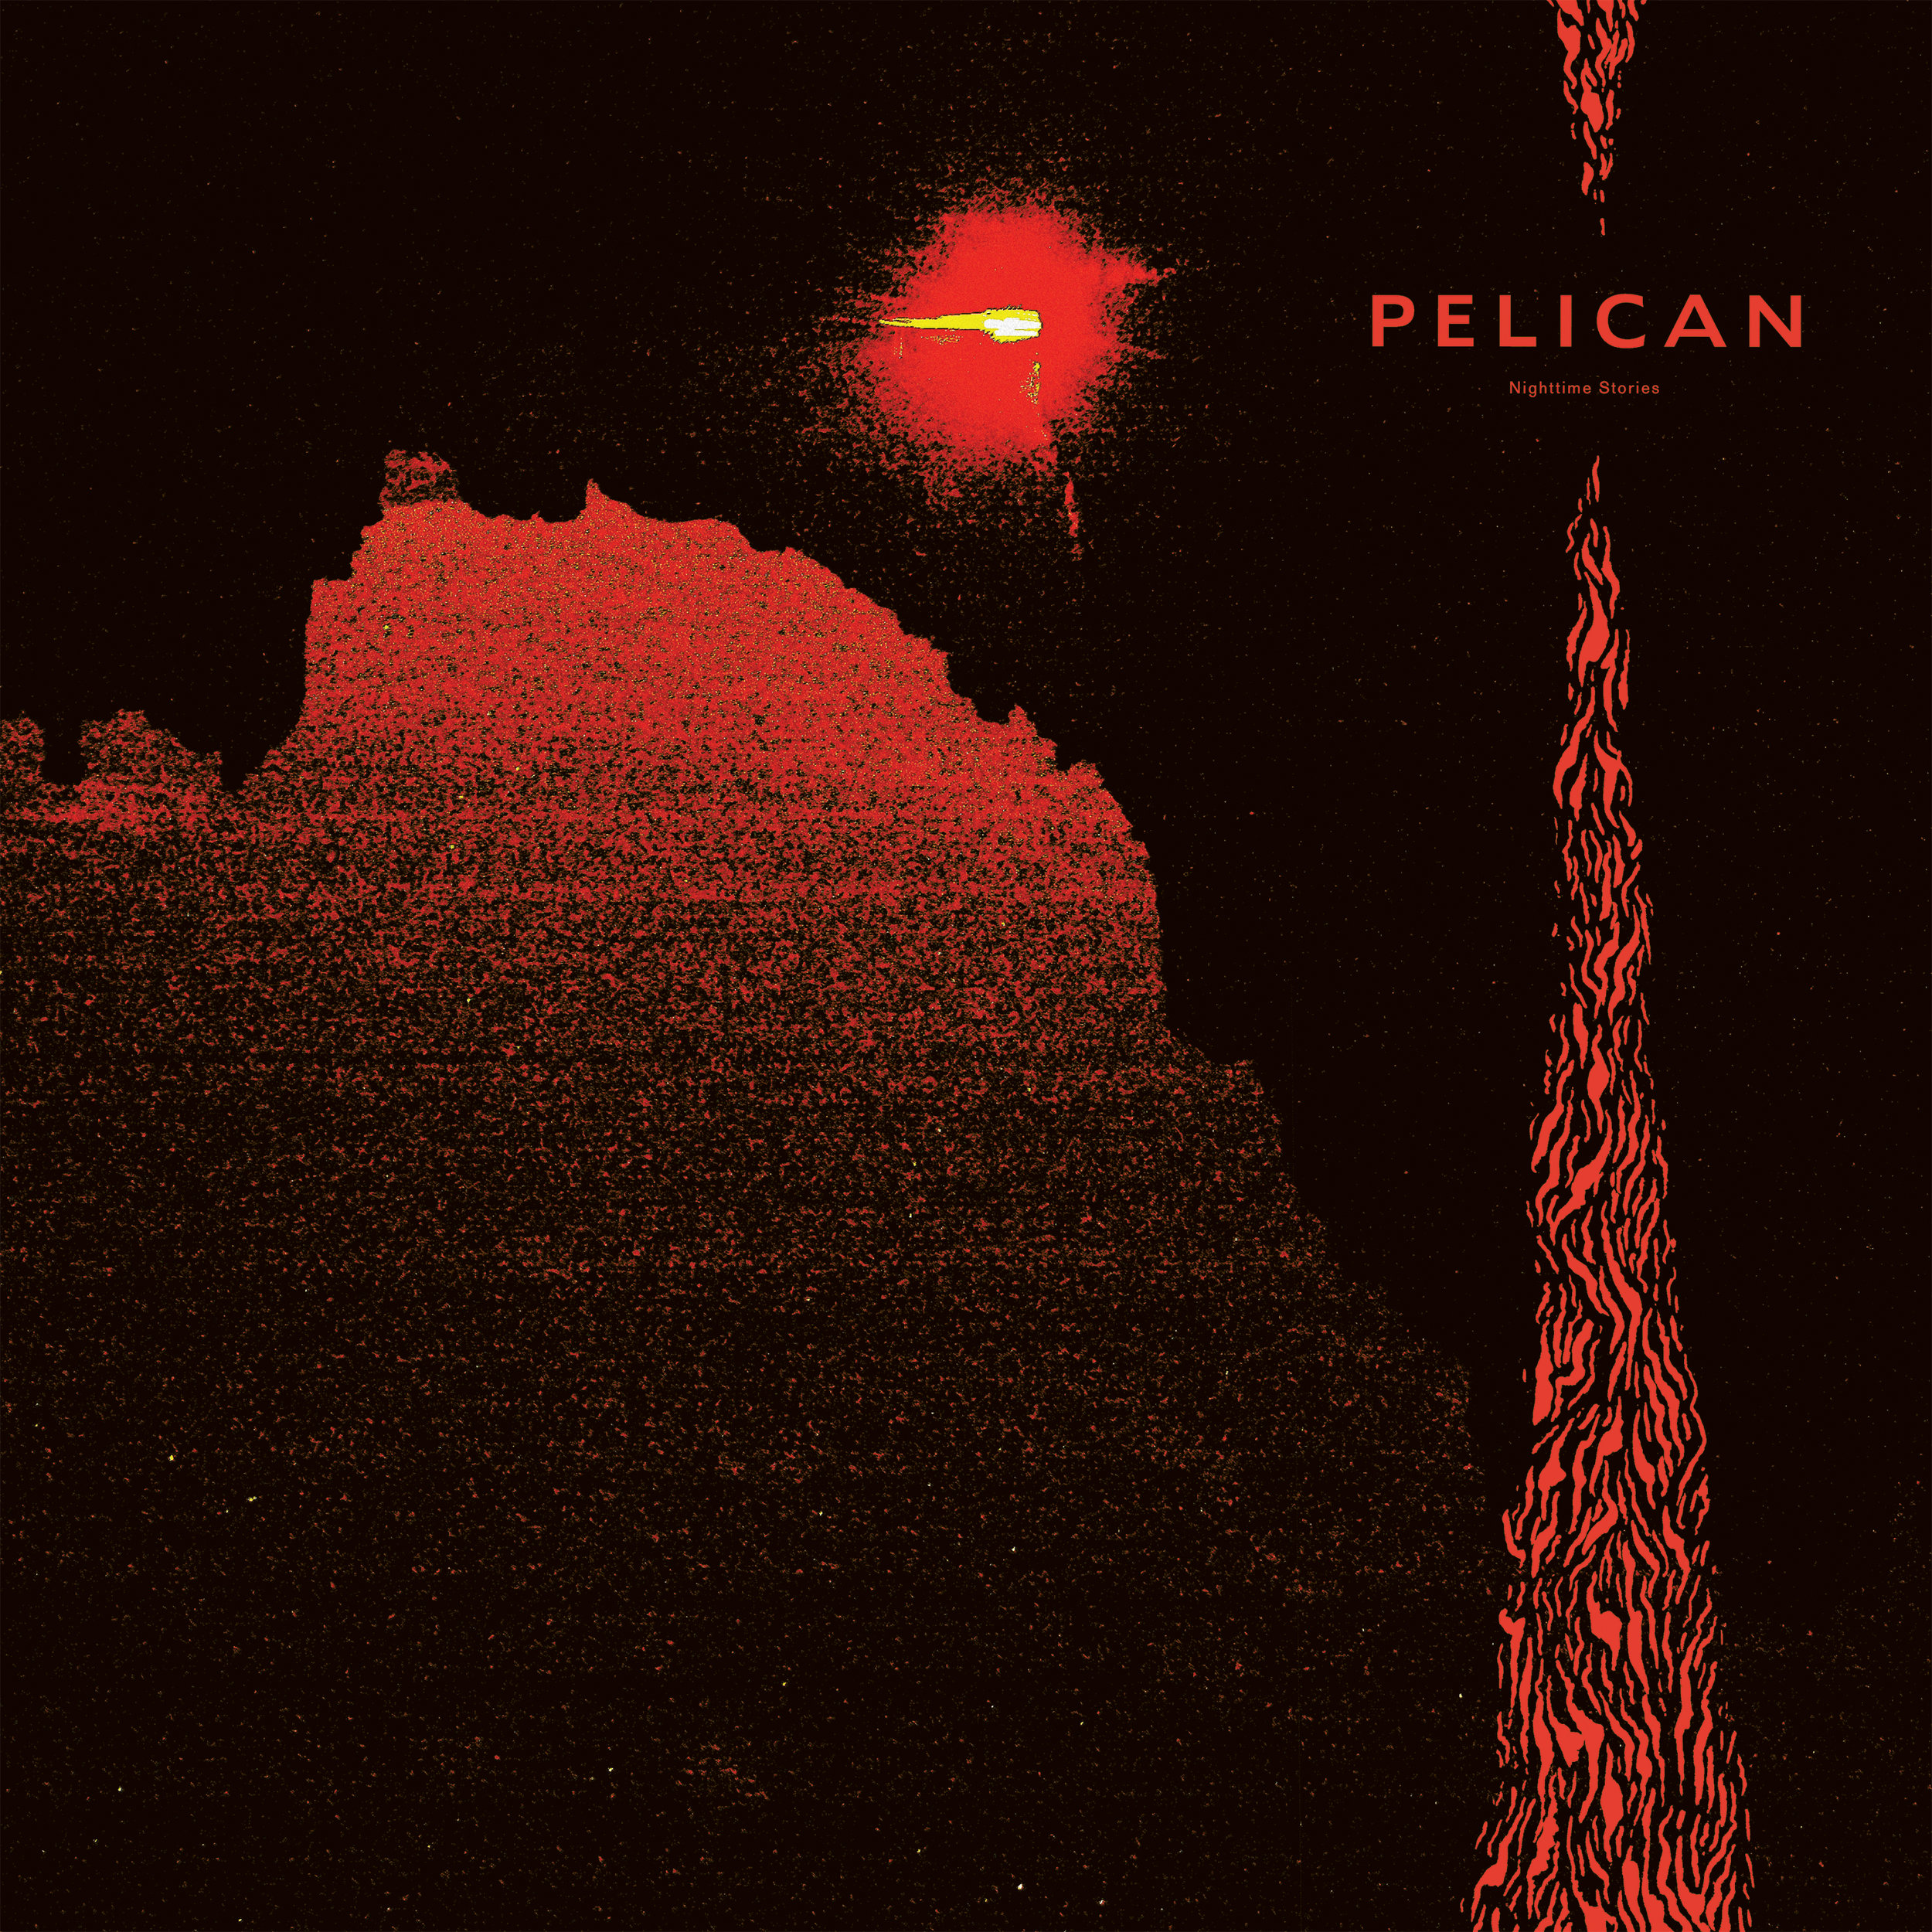 Pelican - Nighttime Stories  Release Date: 6/7/19 Devices Used:  Avalanche Run  /  The Depths  /  Organizer  /  Dispatch Master  /  Tone Job